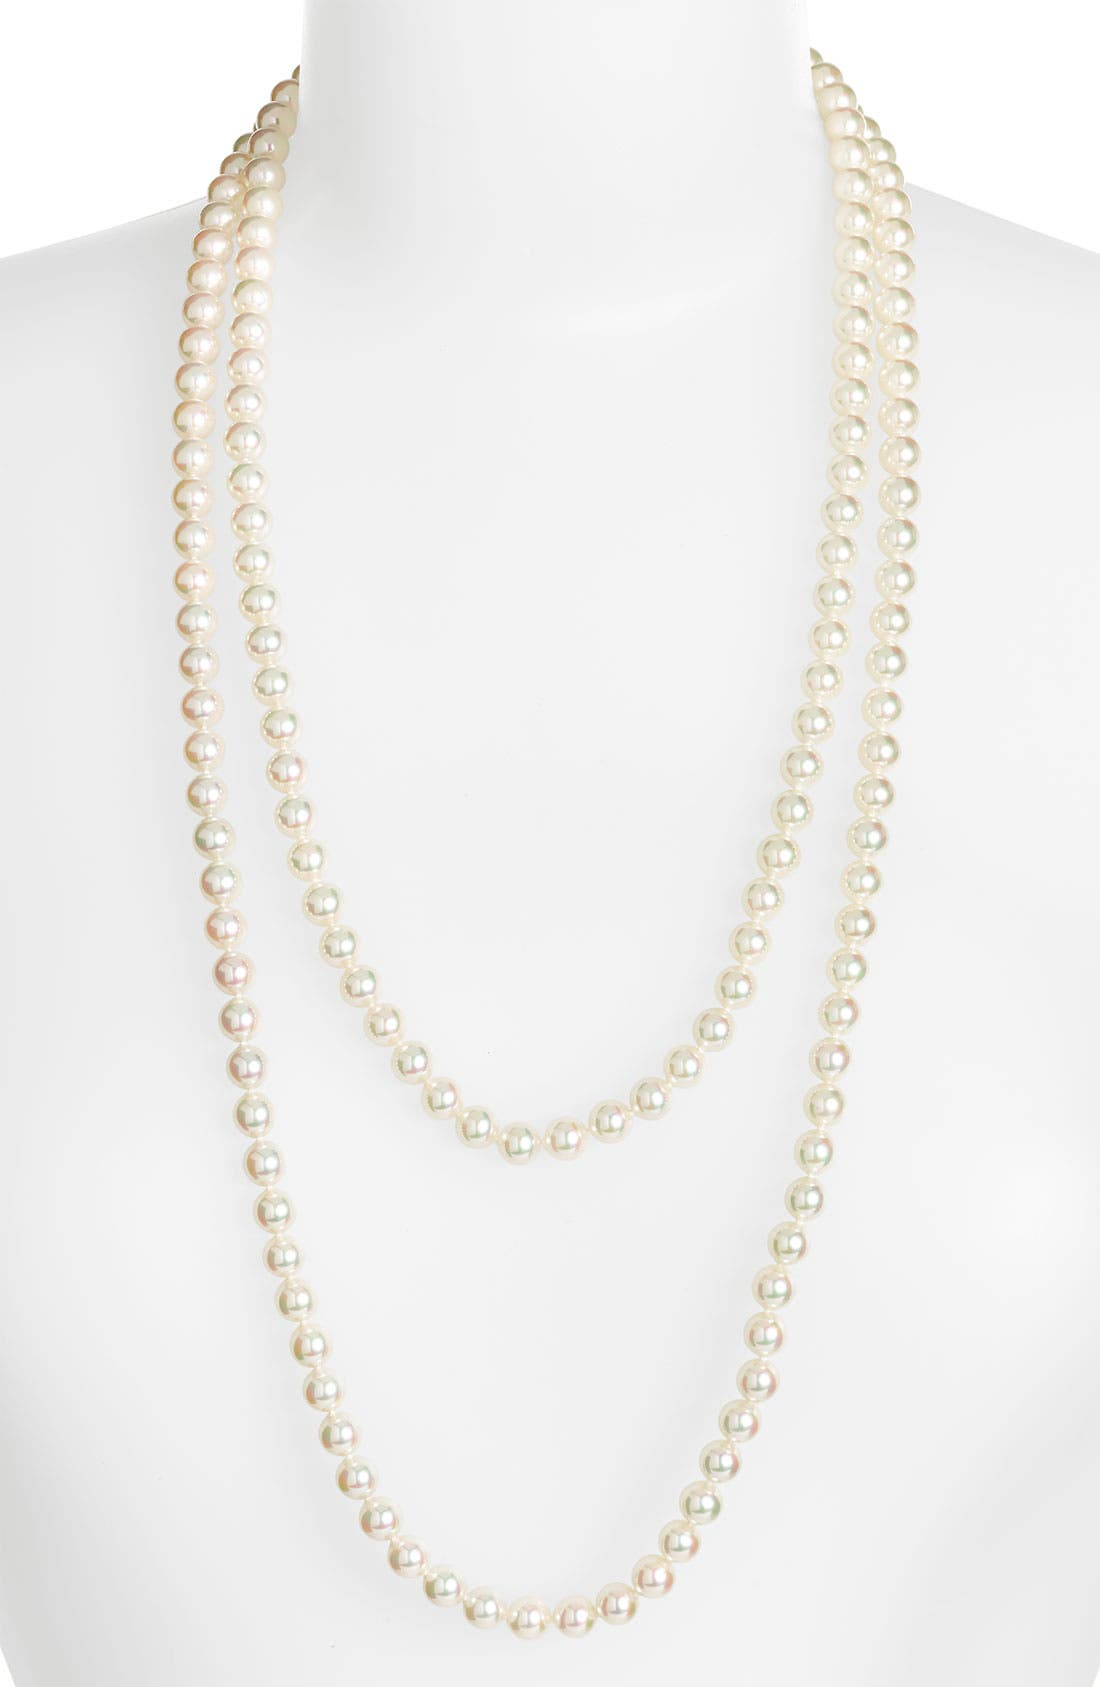 Majorica 7mm Round Pearl Endless Rope Necklace